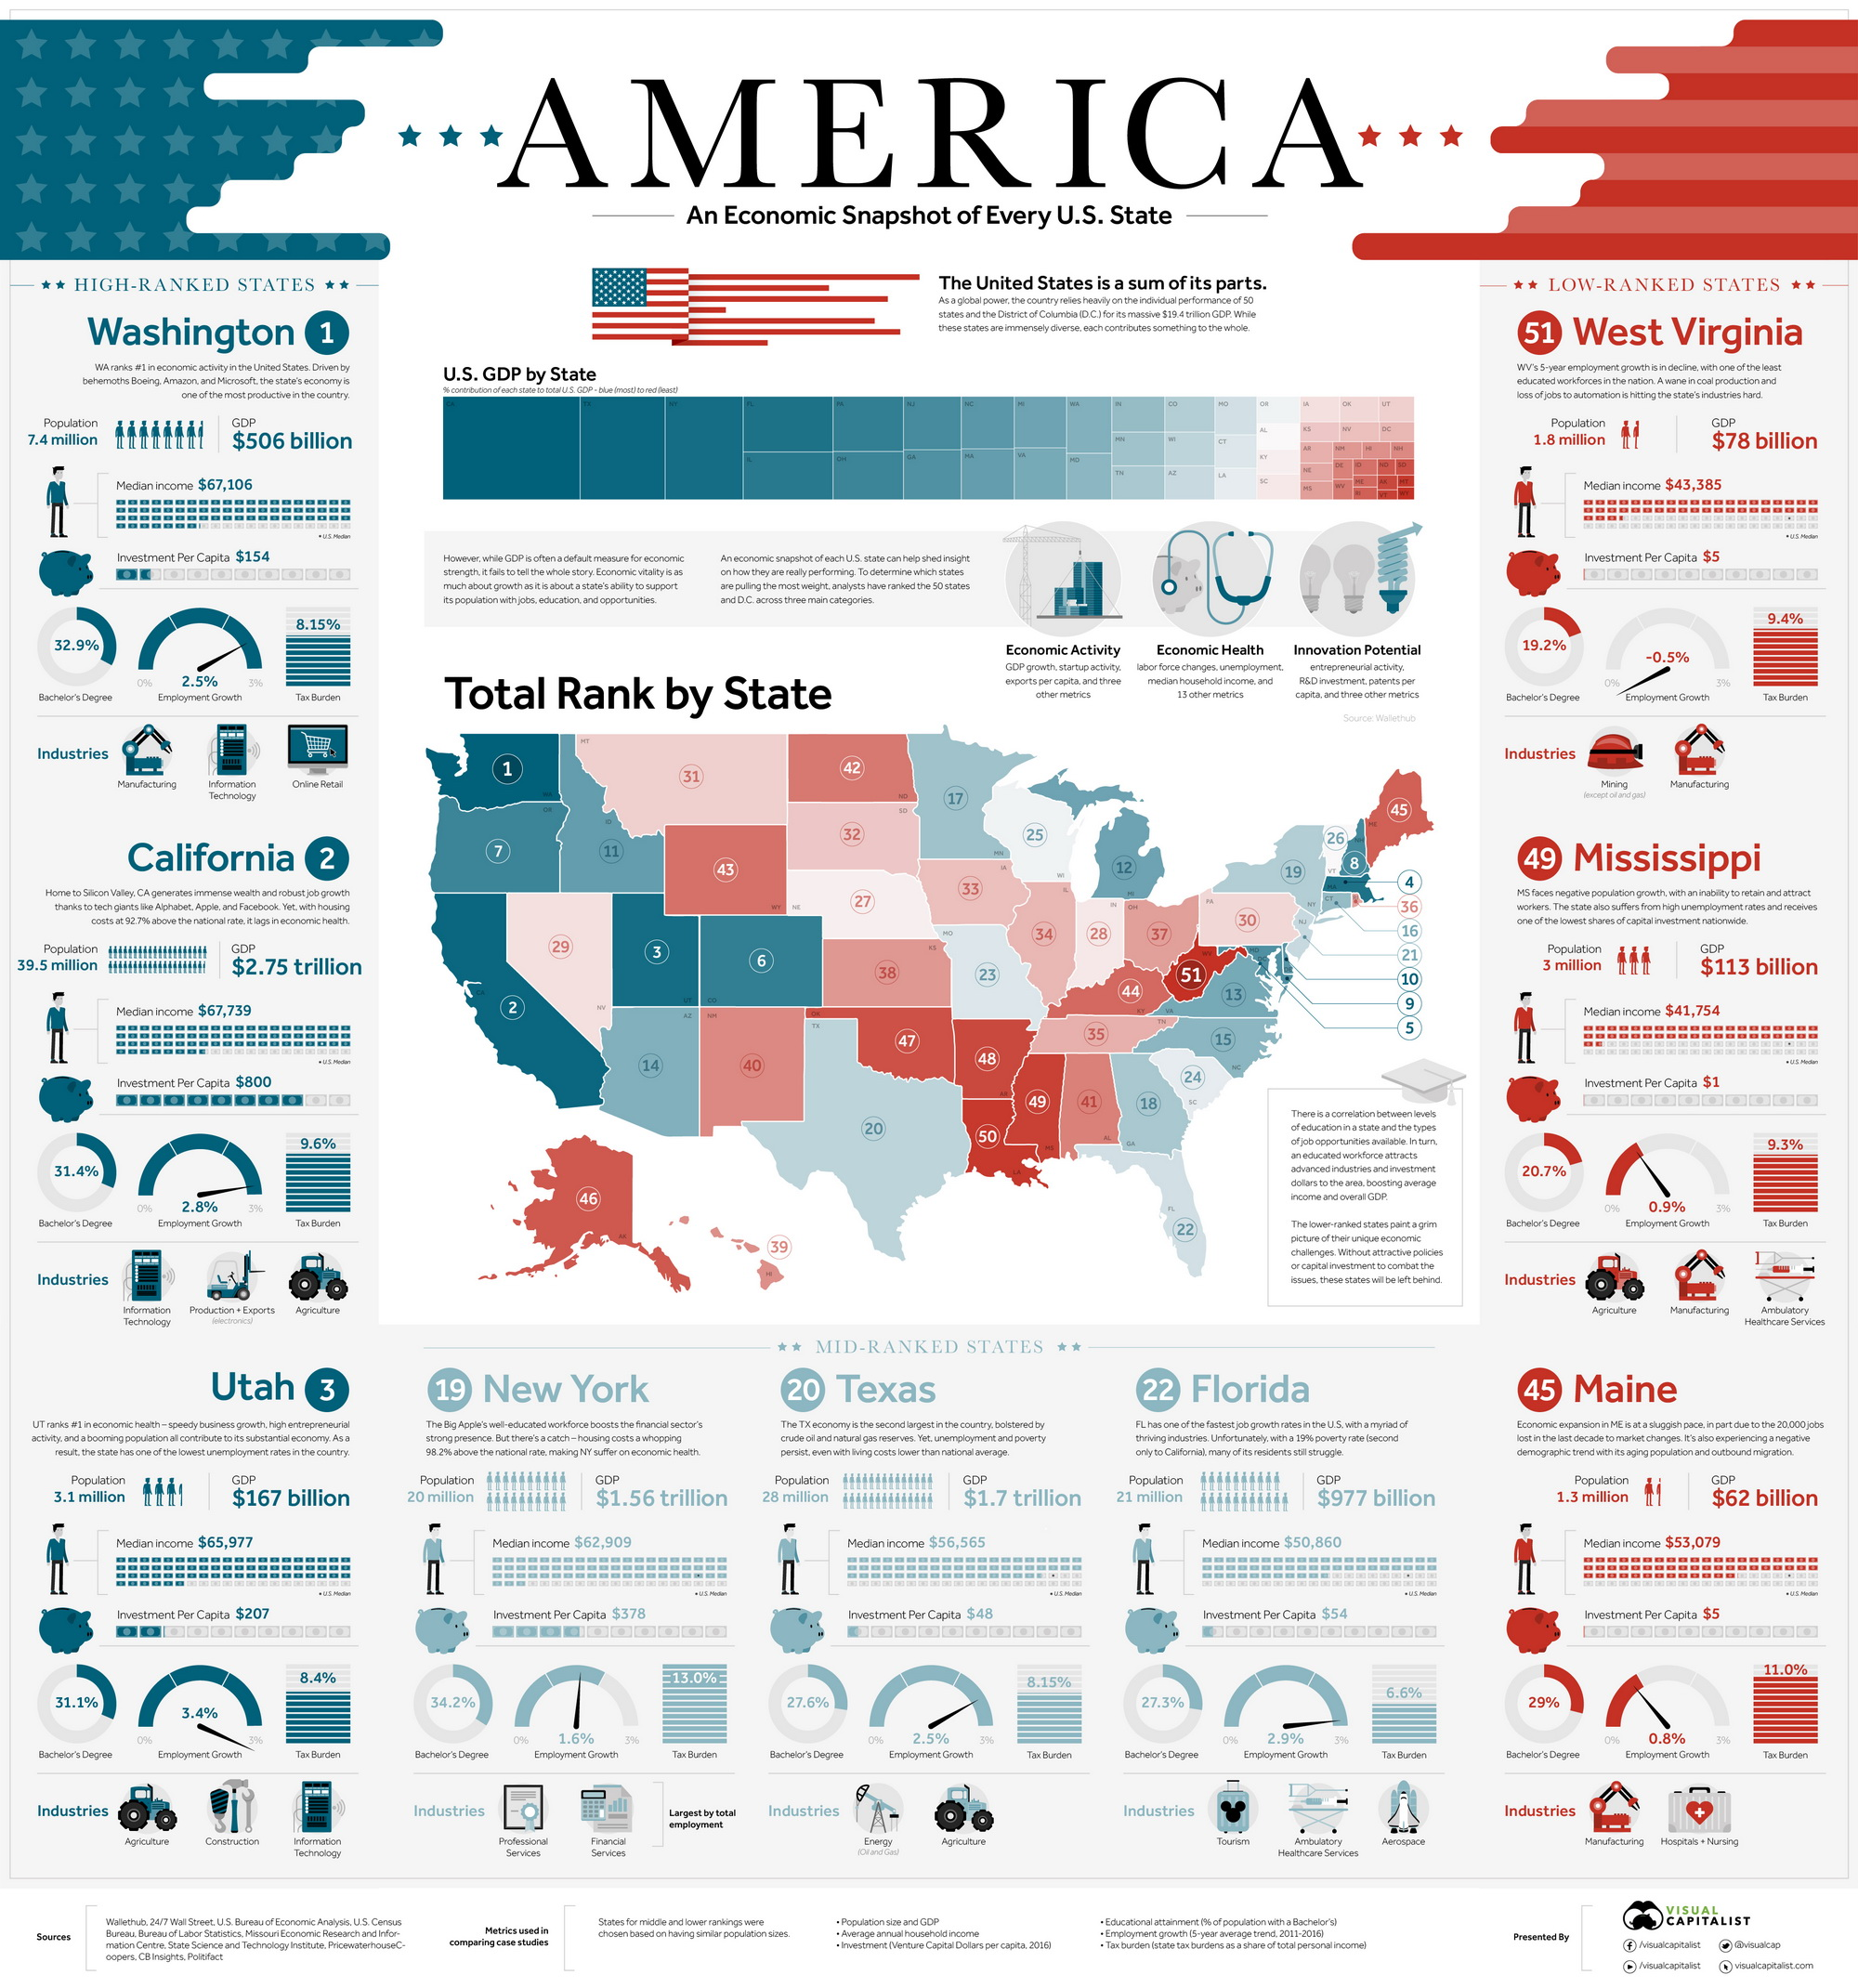 An economic snapshot of every U.S. State